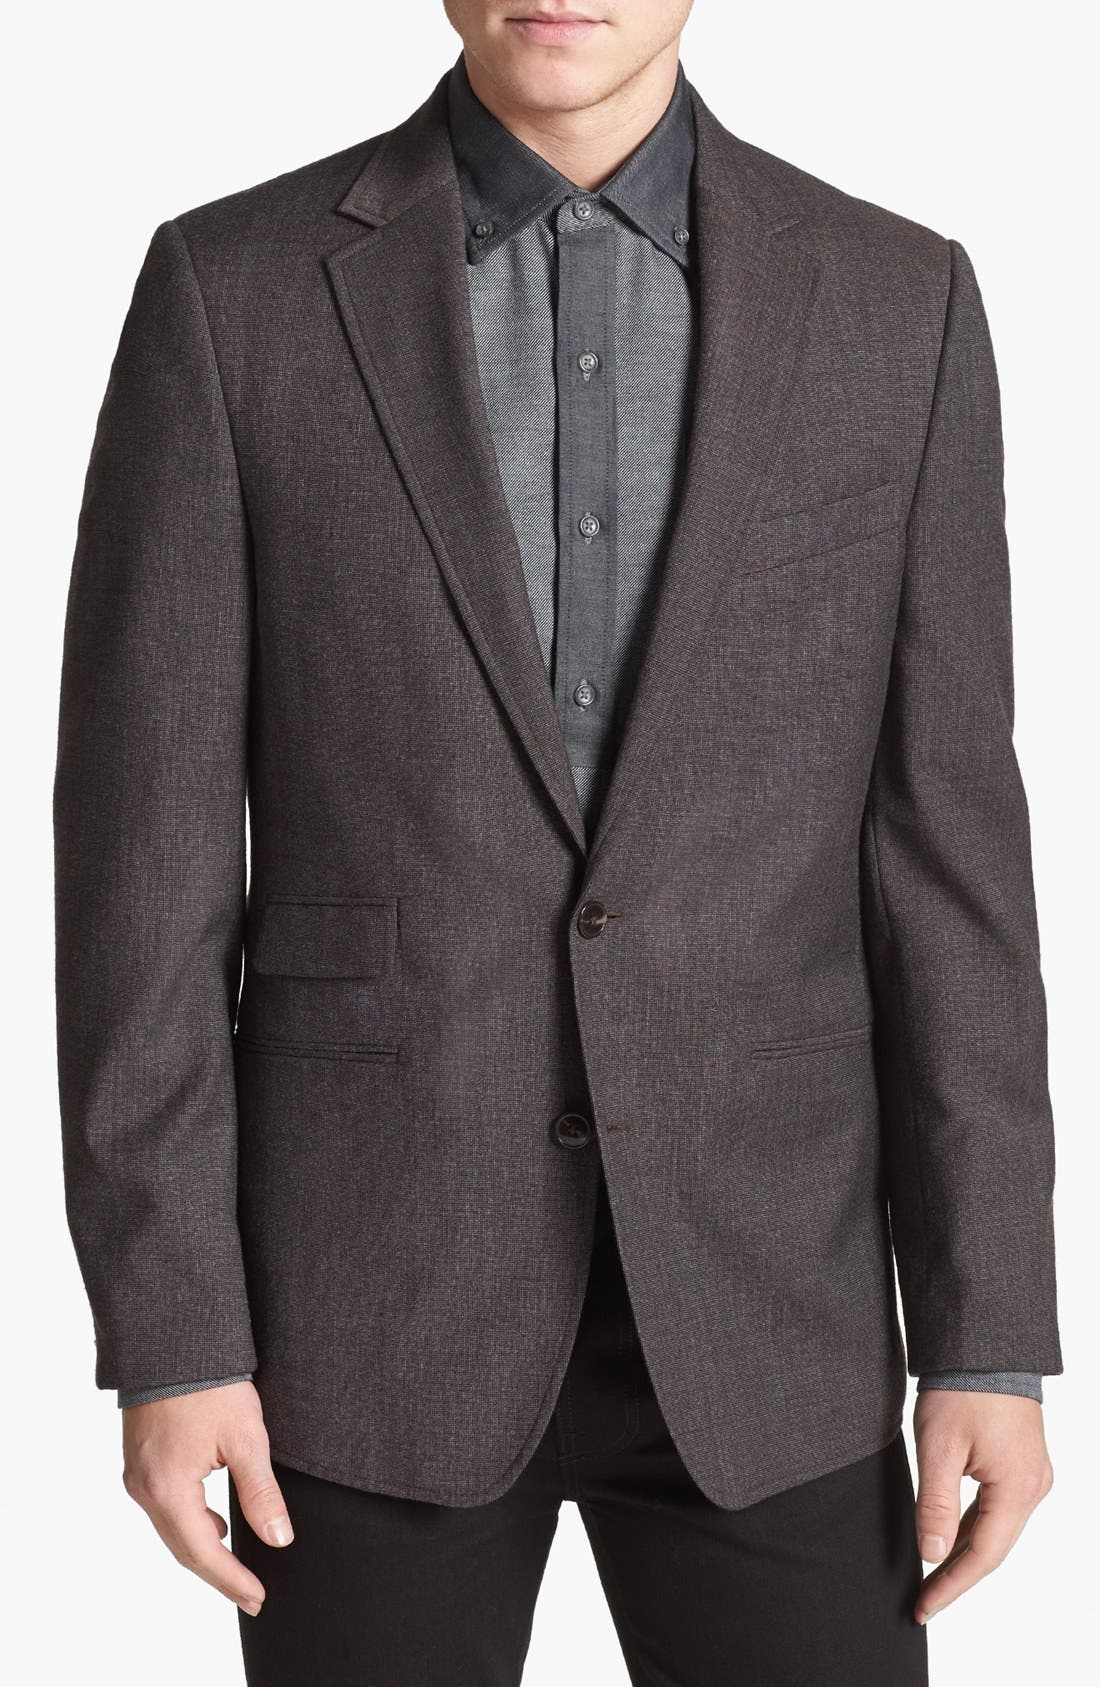 Alternate Image 1 Selected - Vince Camuto Slim Fit Wool Sportcoat